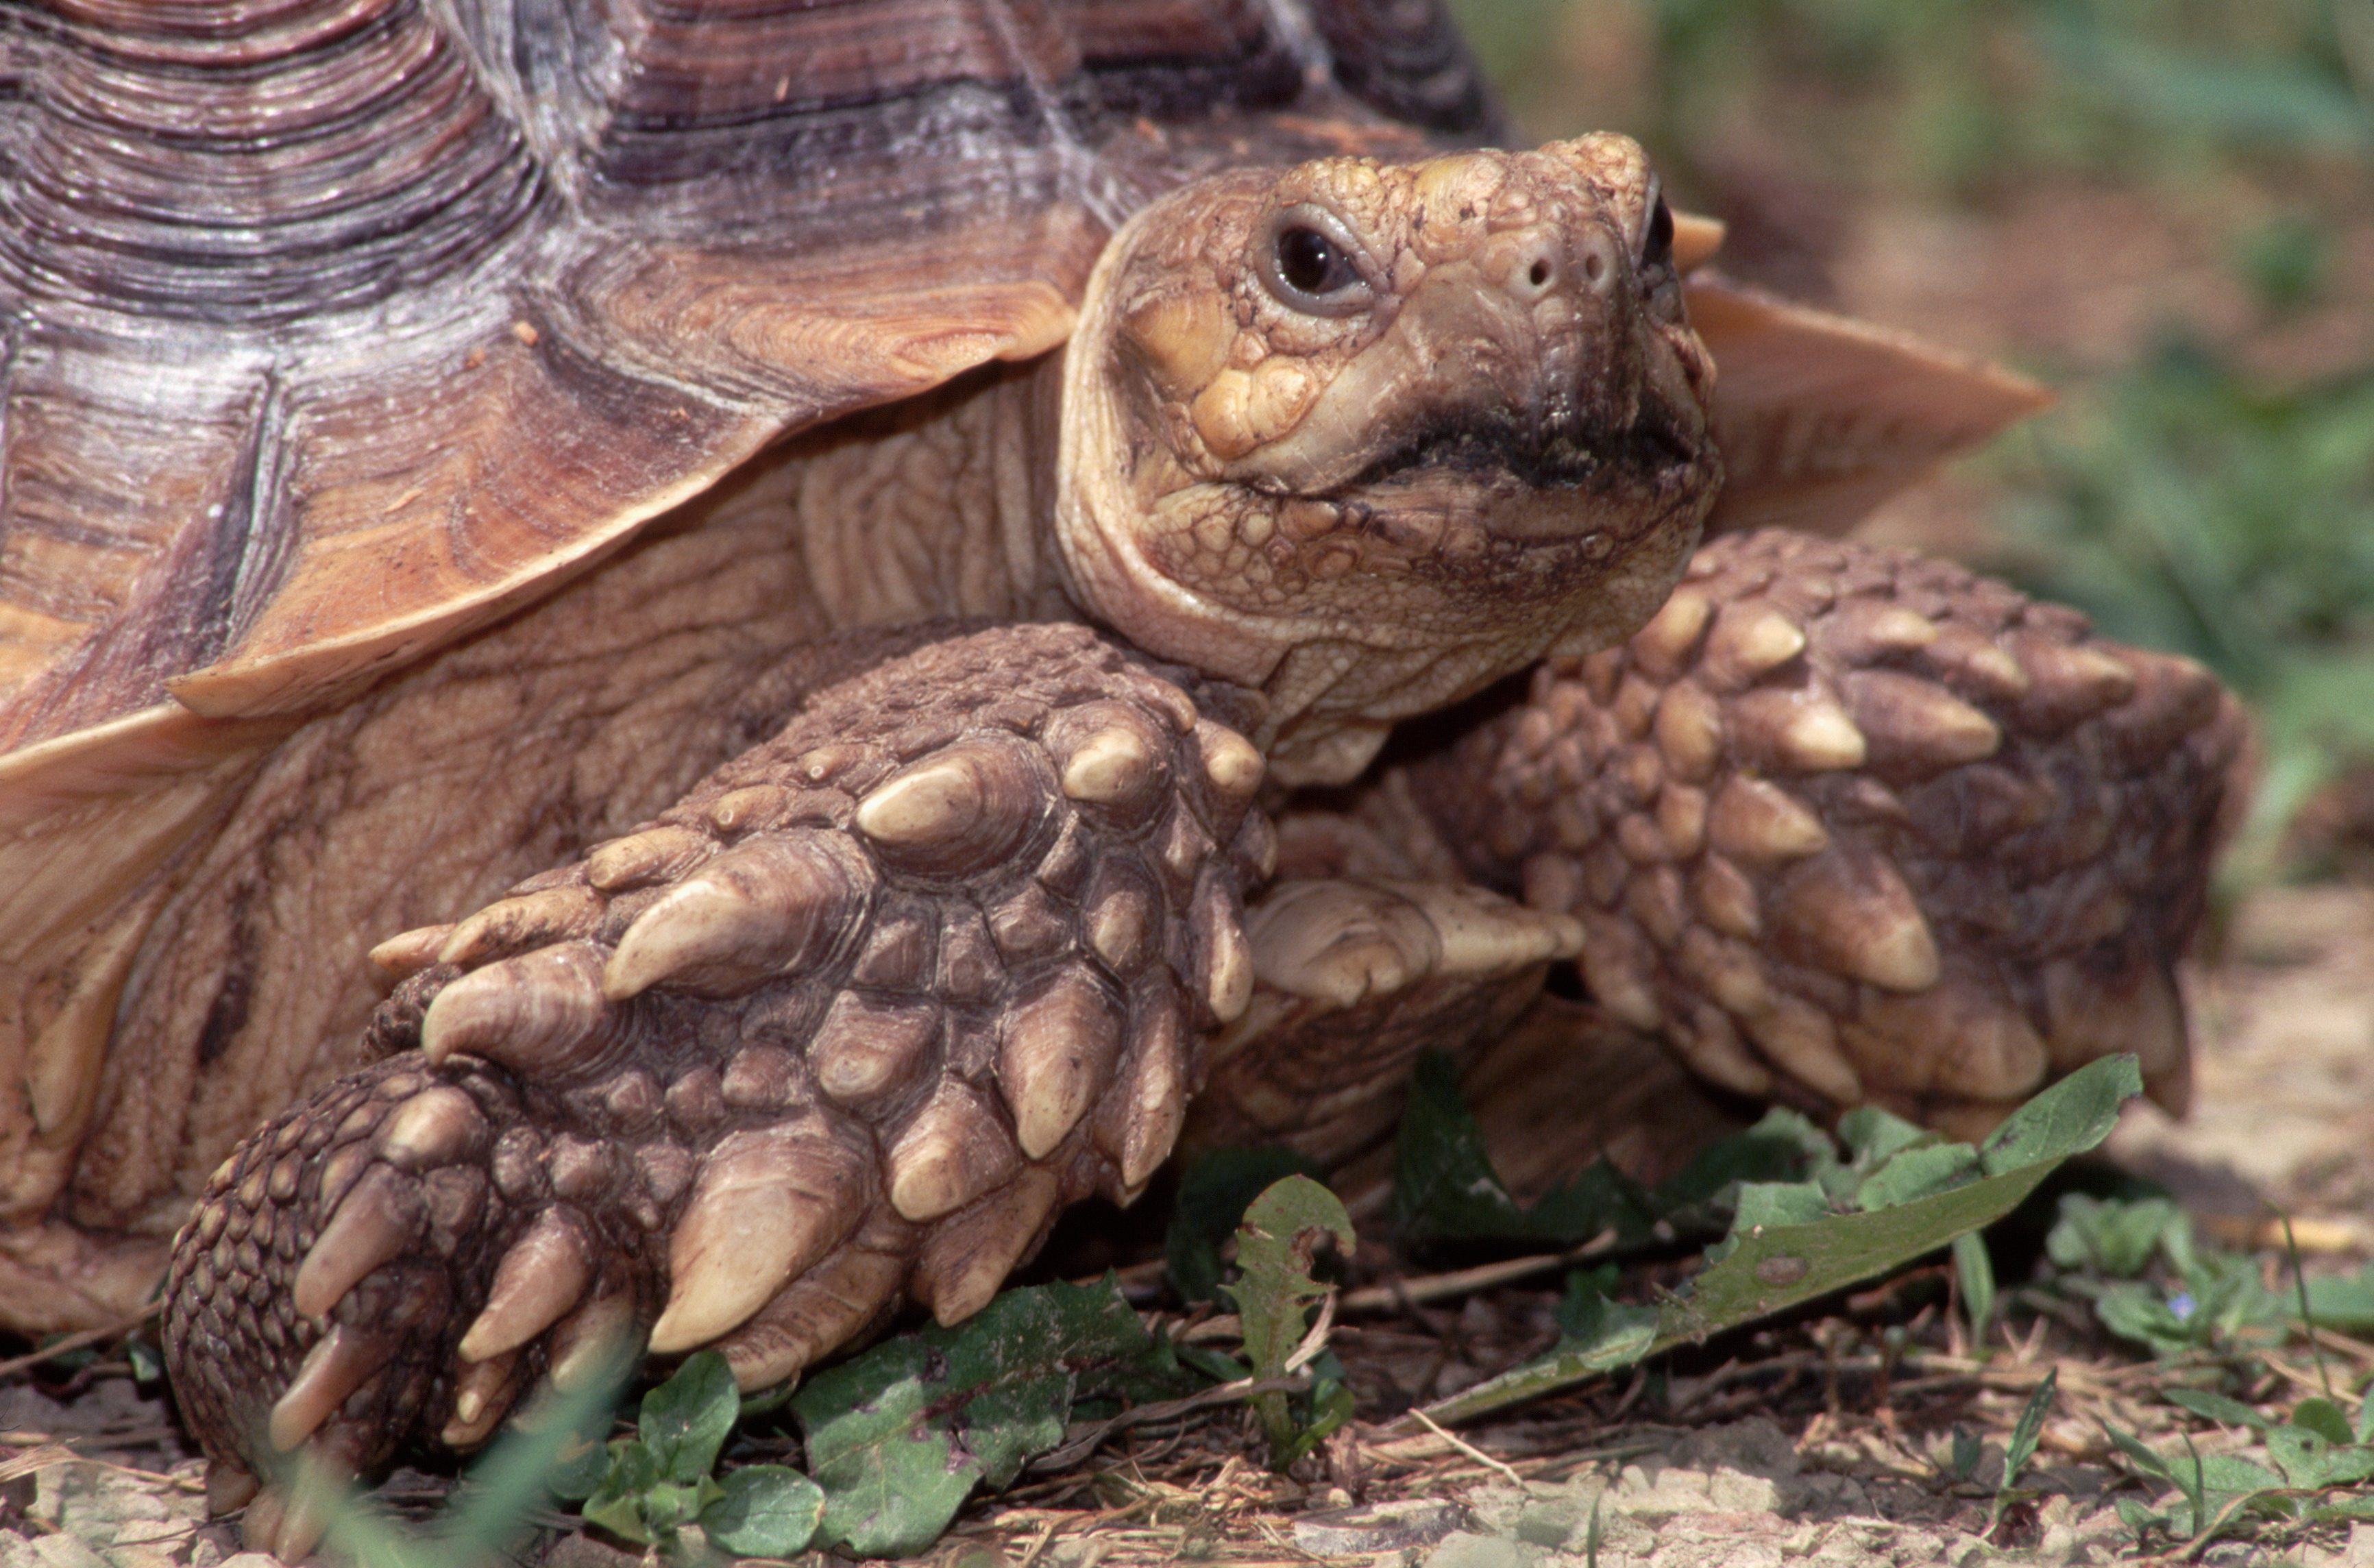 Head and Front Legs of an African Spurred Tortoise